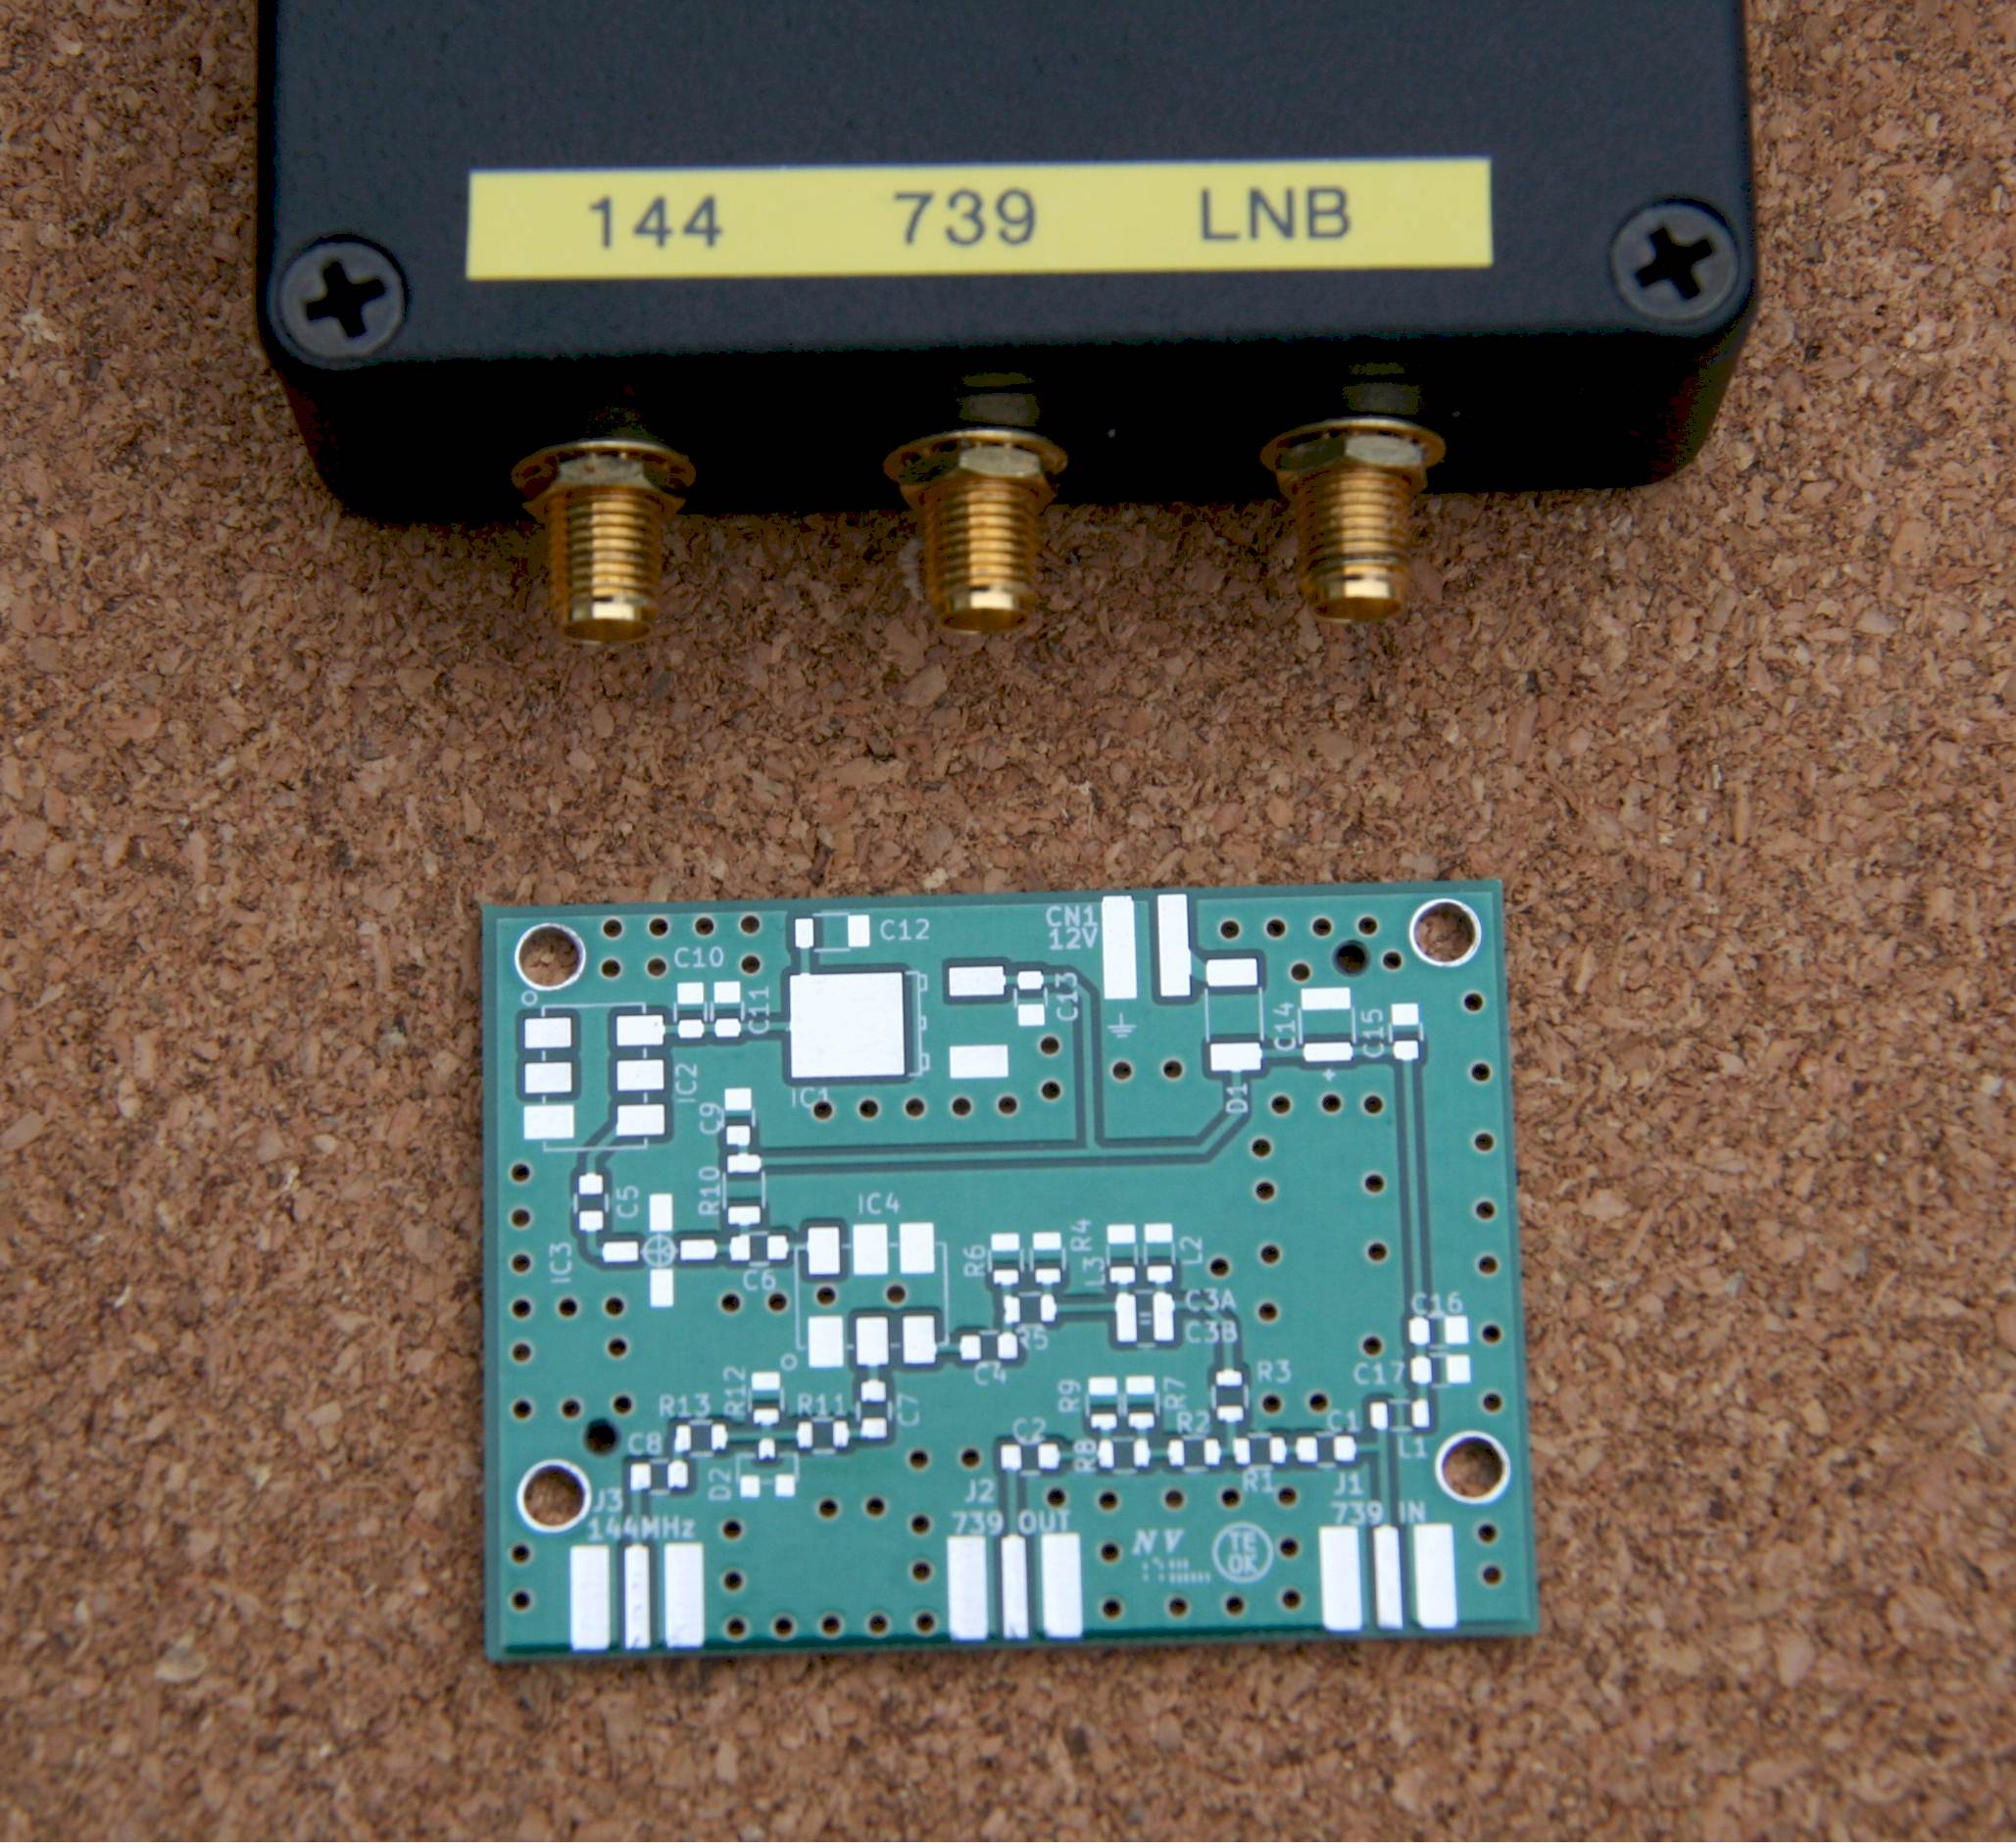 G0MRF UHF-VHF Receive Converter for use with a satellite LNB